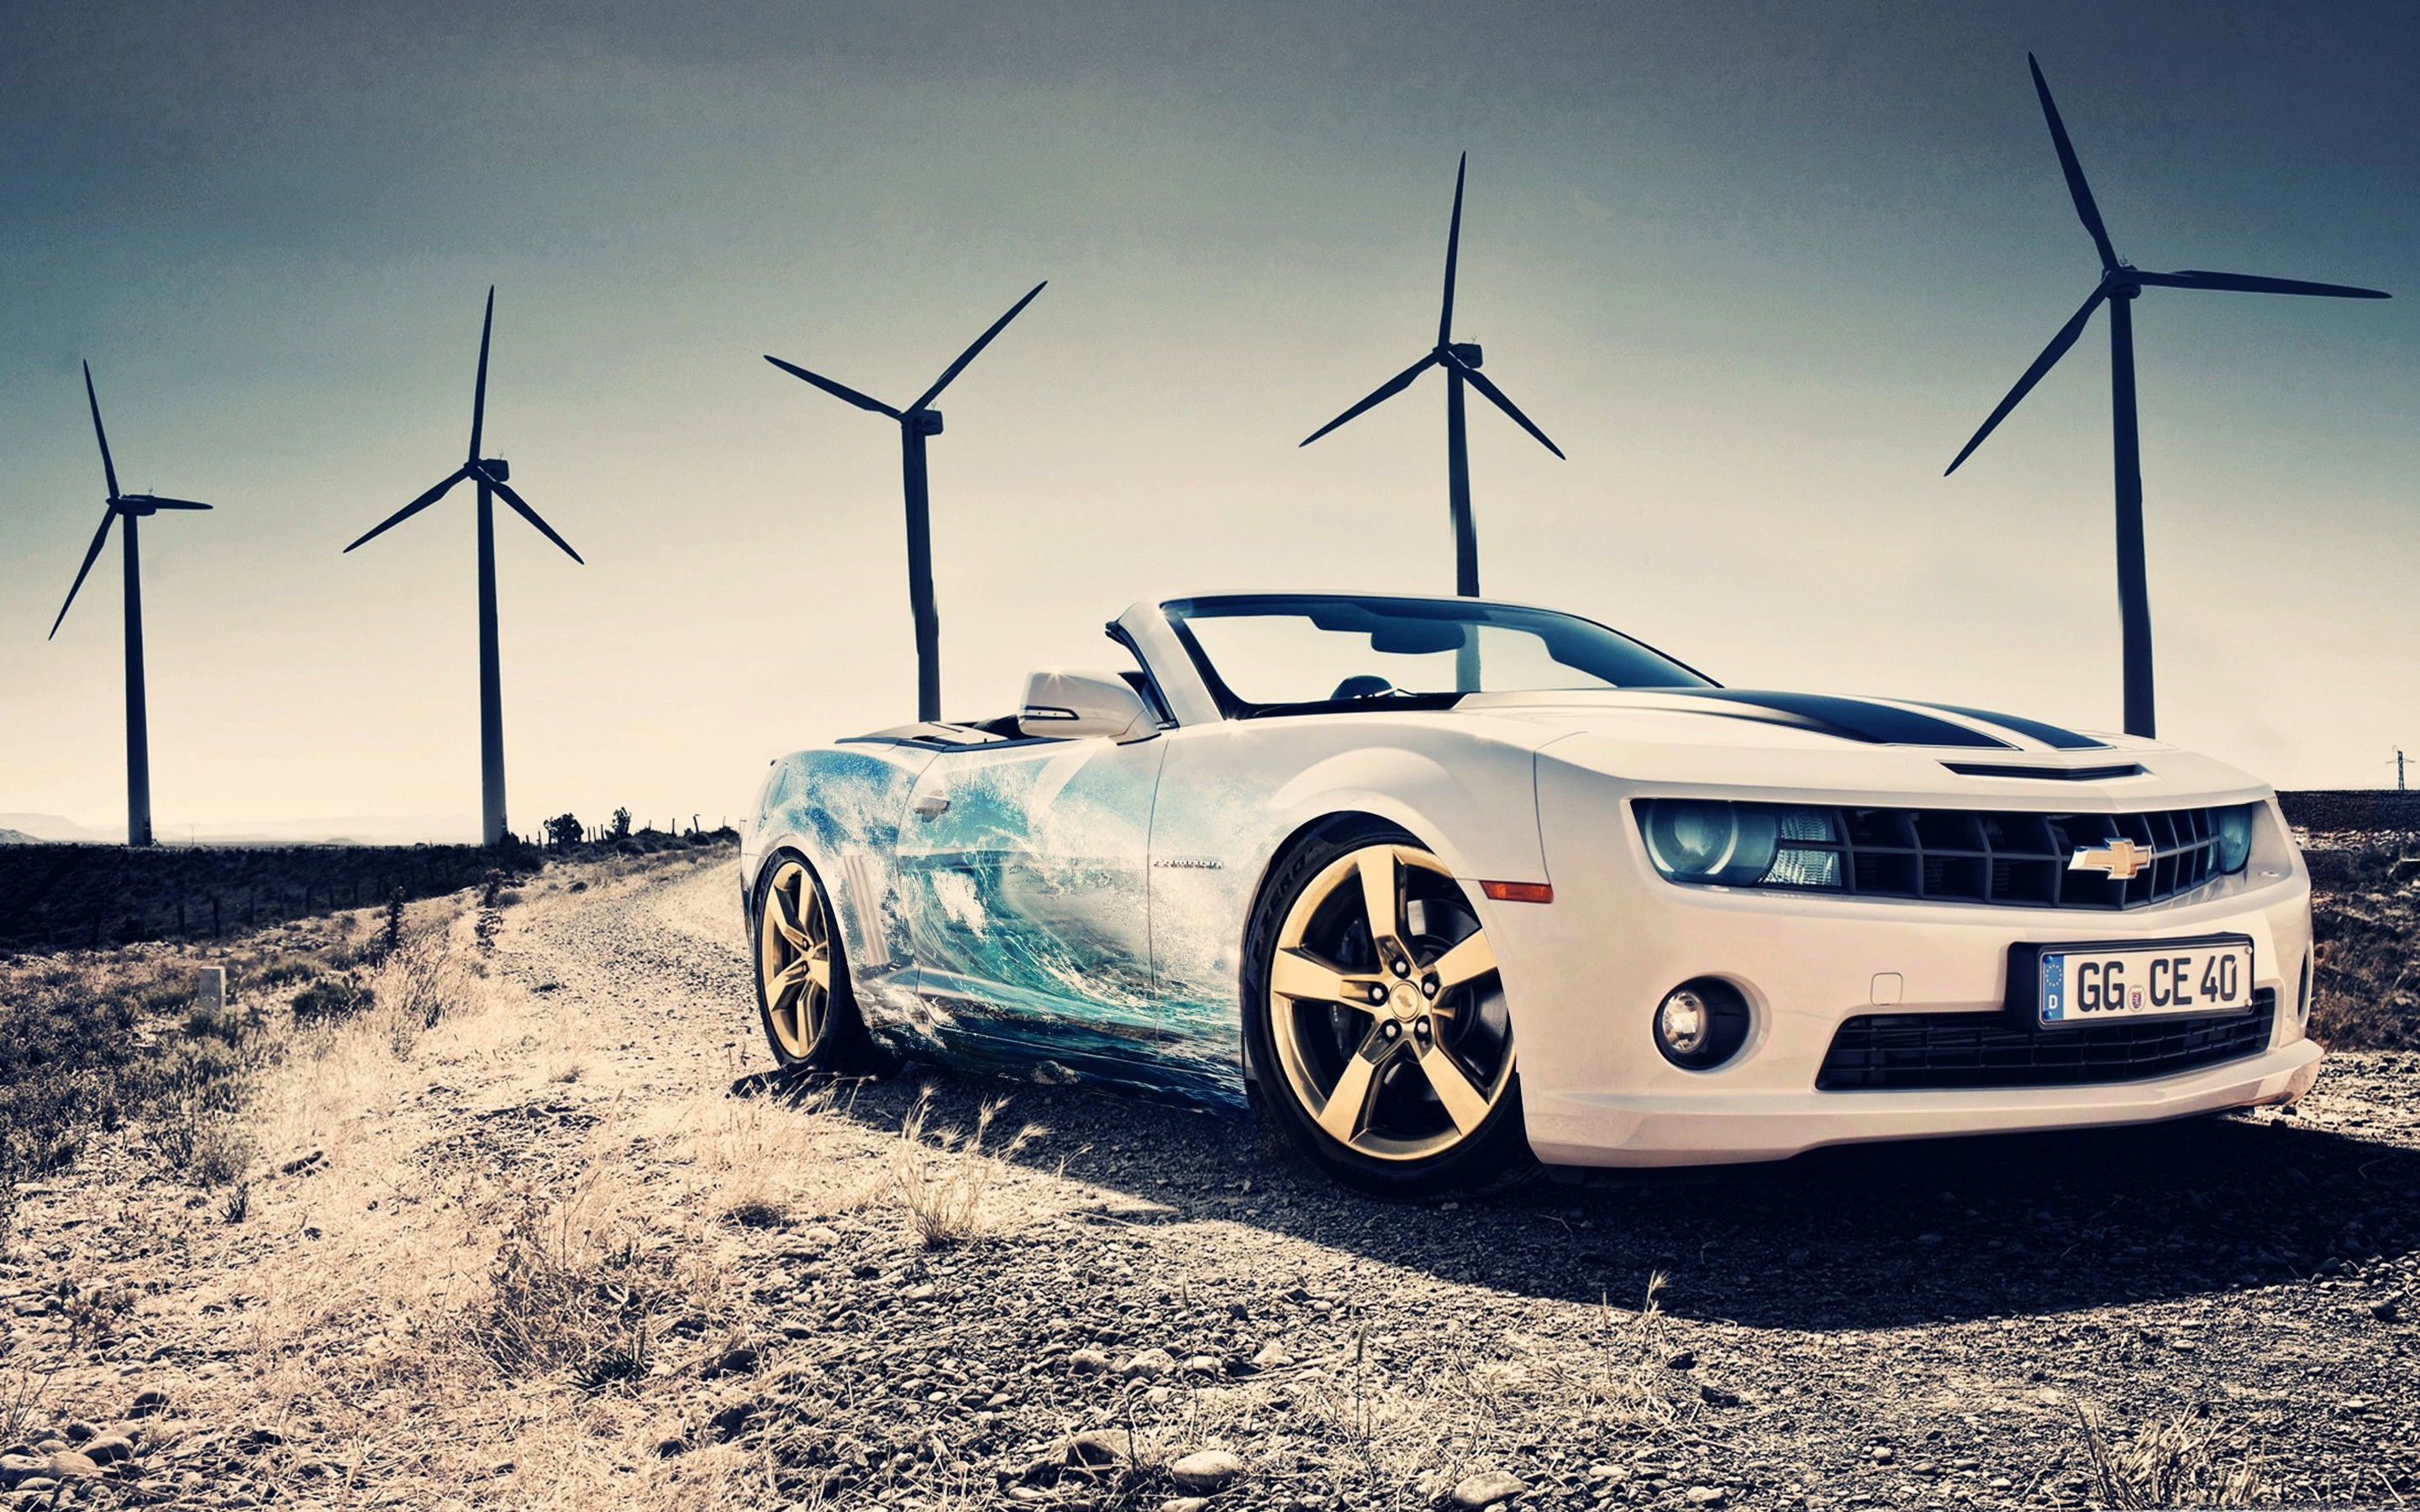 Car Wallpapers Amazing High Resolution Car Pictures Picsart Edit Car Background 530401 Hd Wallpaper Backgrounds Download